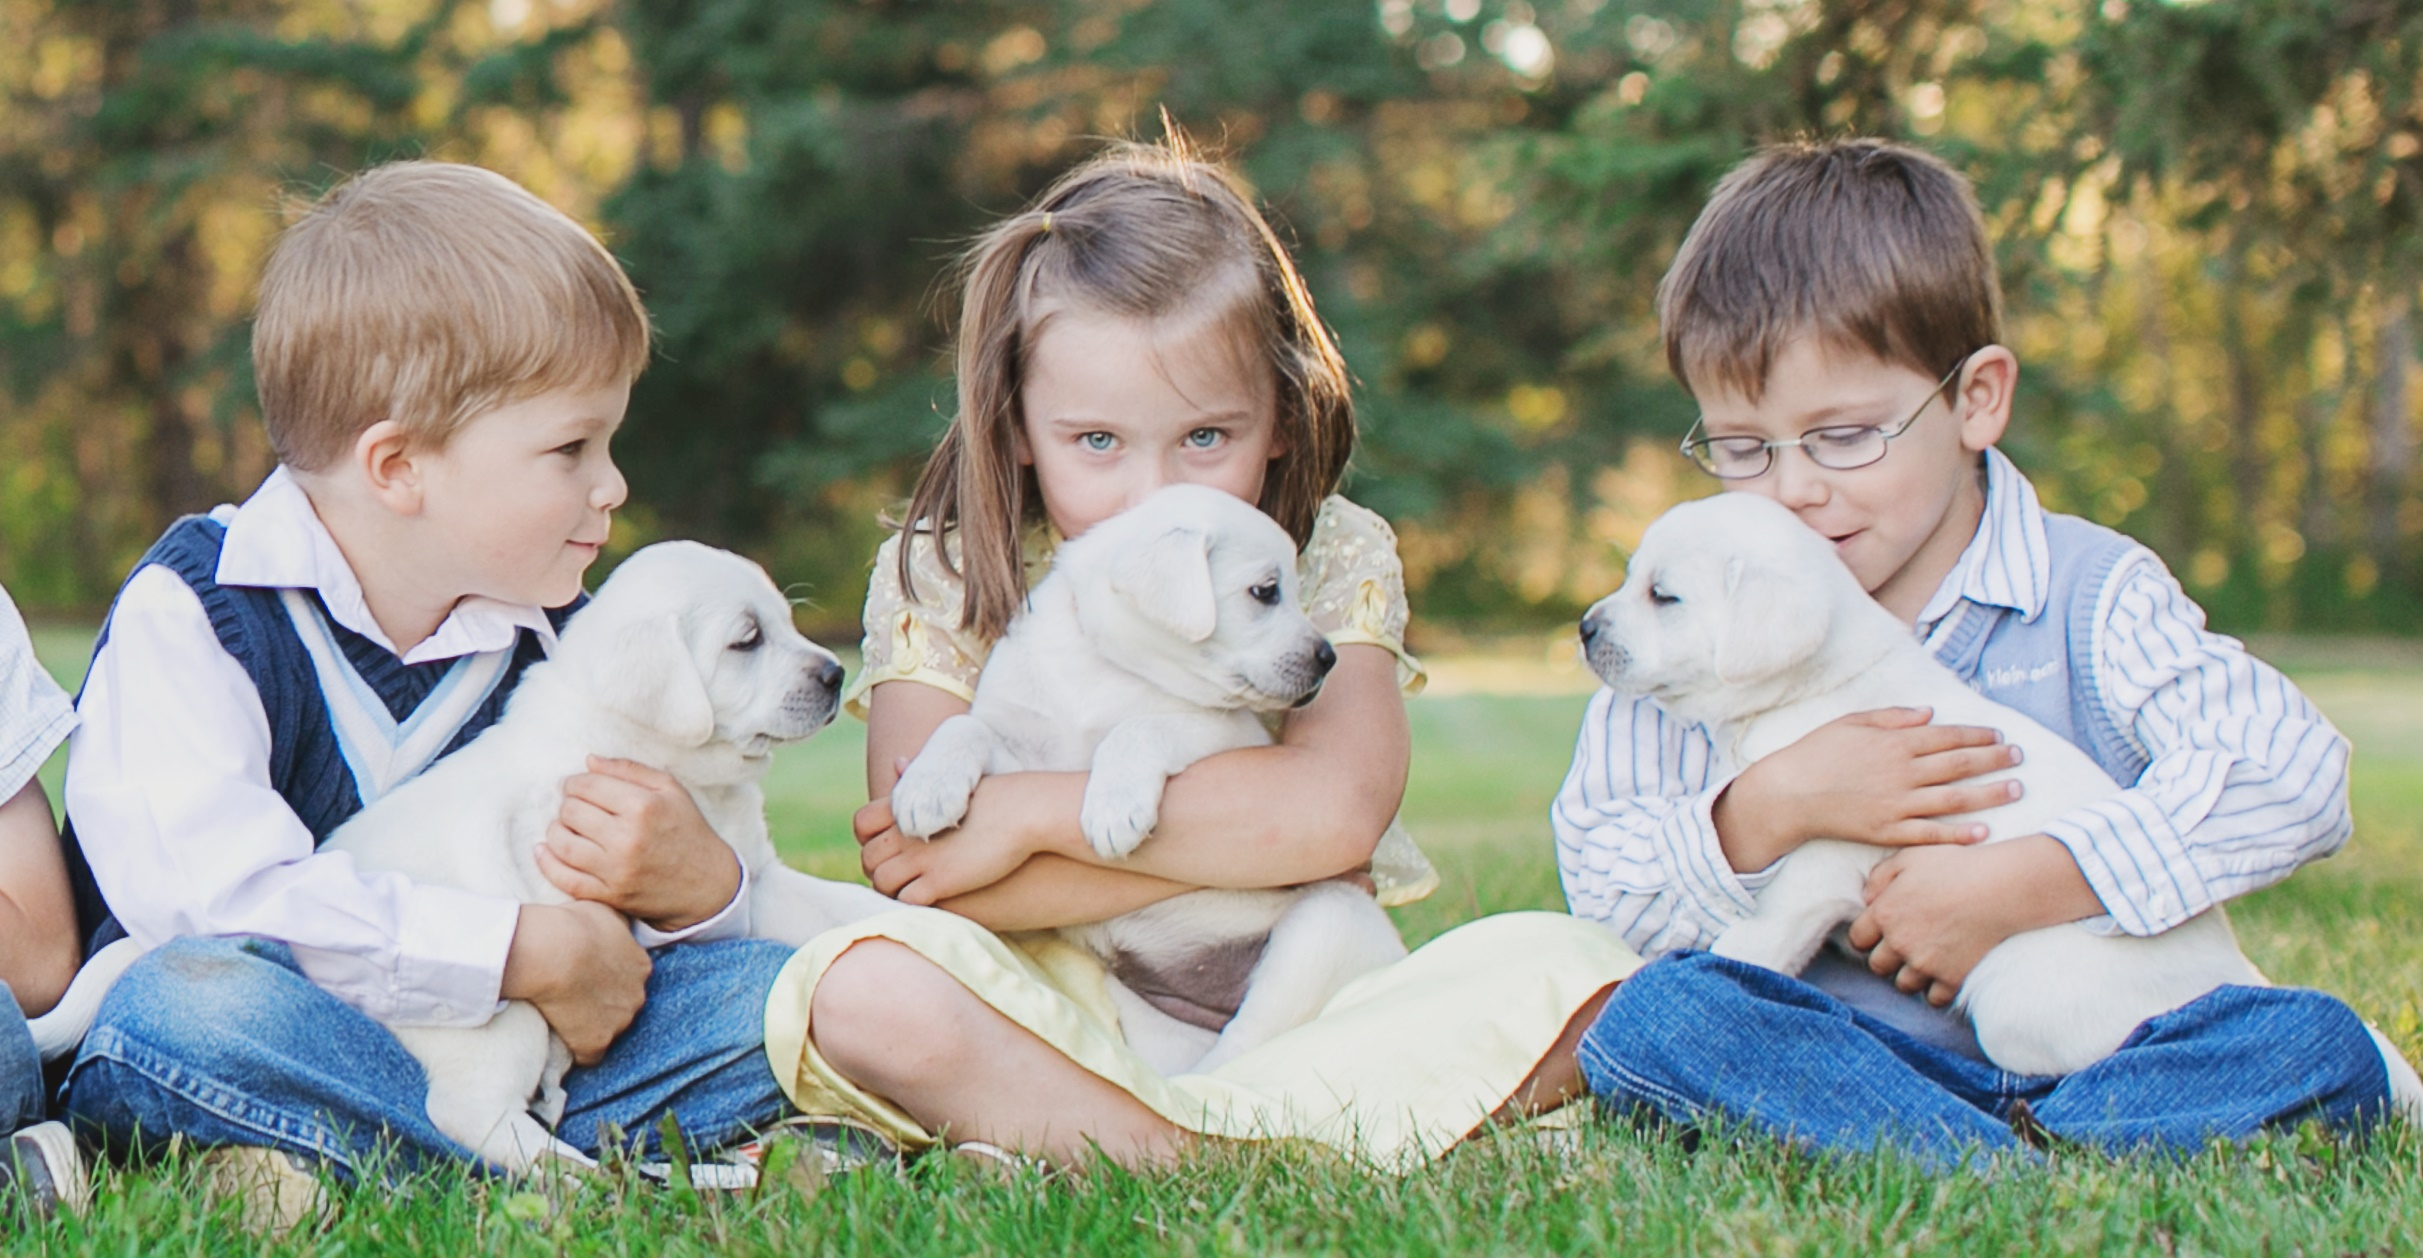 Ace Labradors children